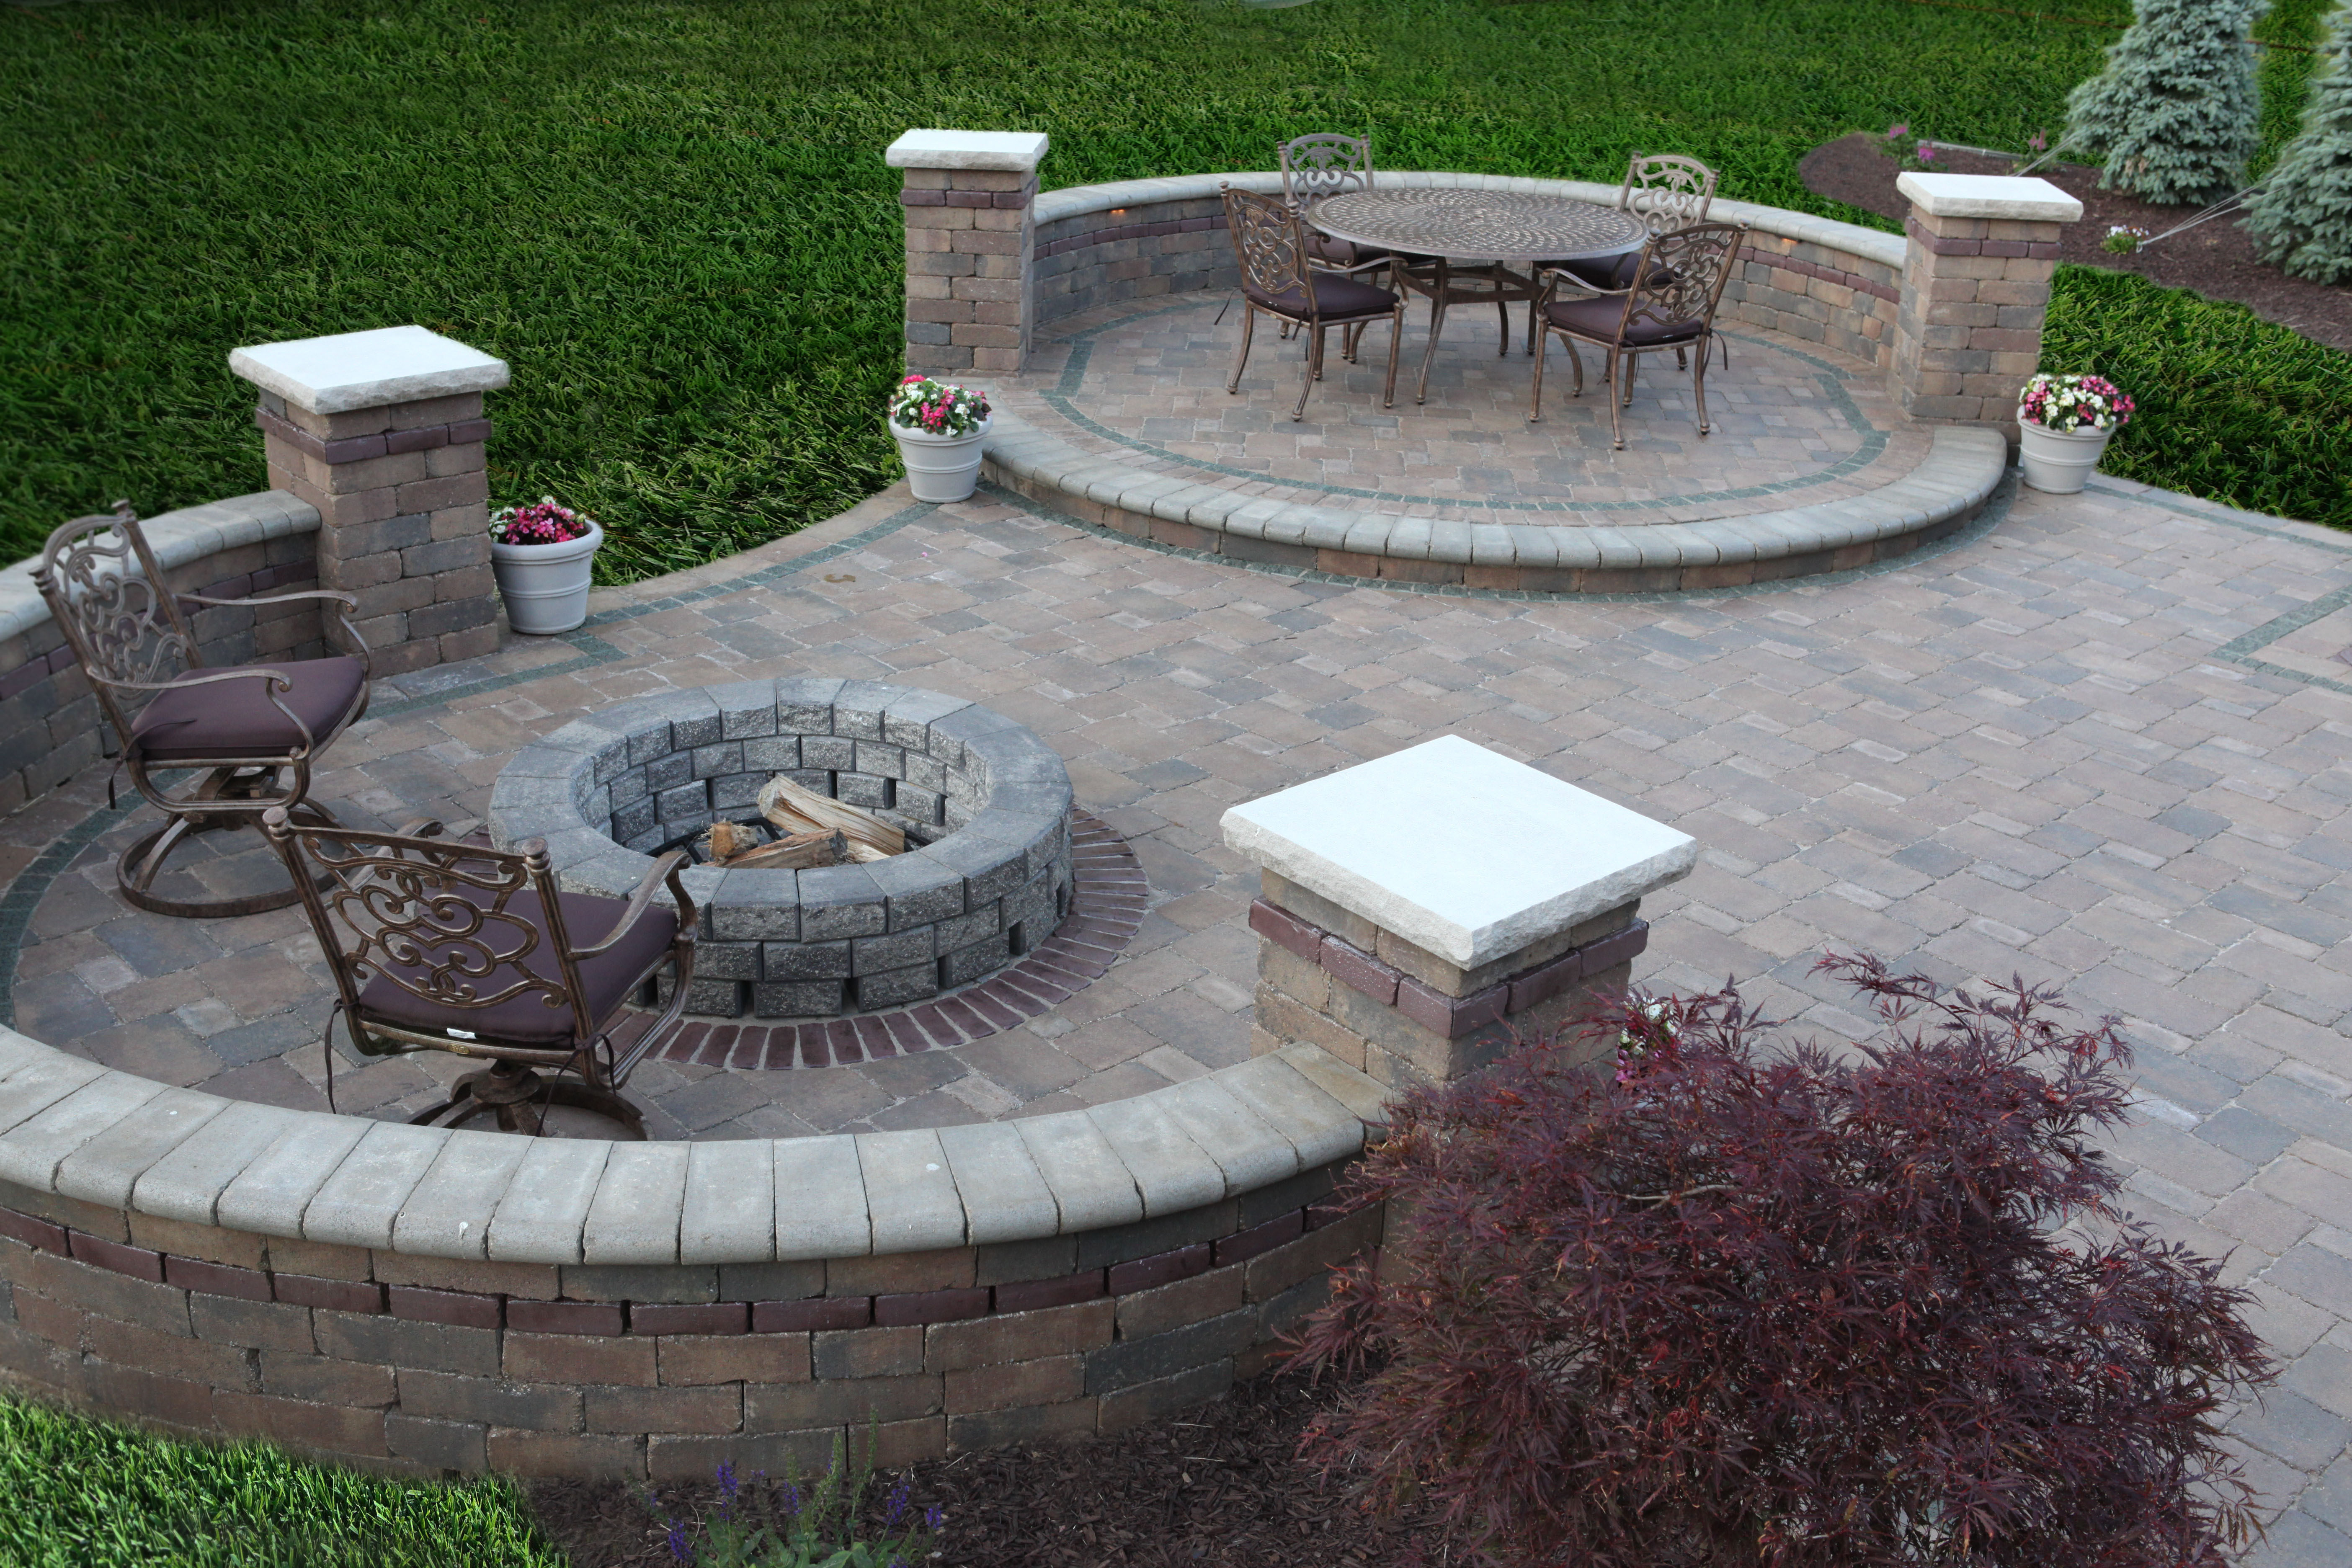 Best ideas about Patio Fire Pit . Save or Pin Baron Landscaping Outdoor Fireplace Contractor Now.